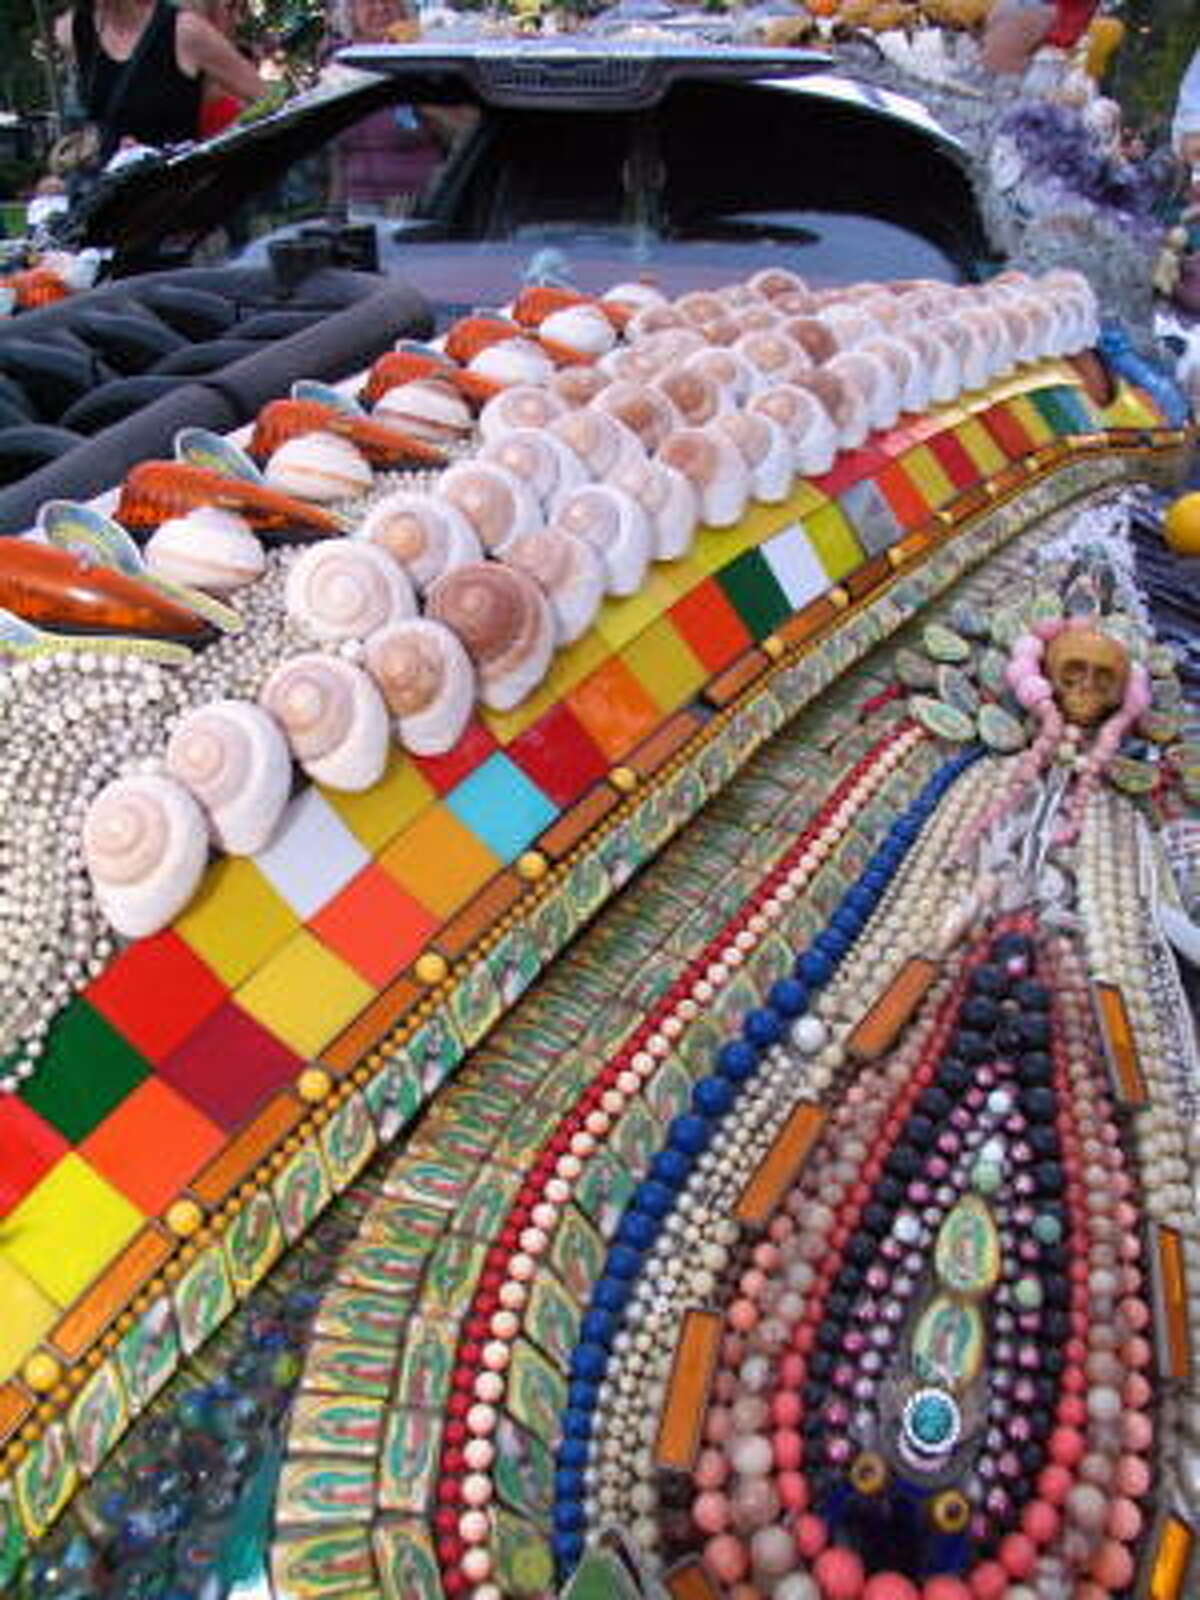 Shells and beads were a popular art car accessory.